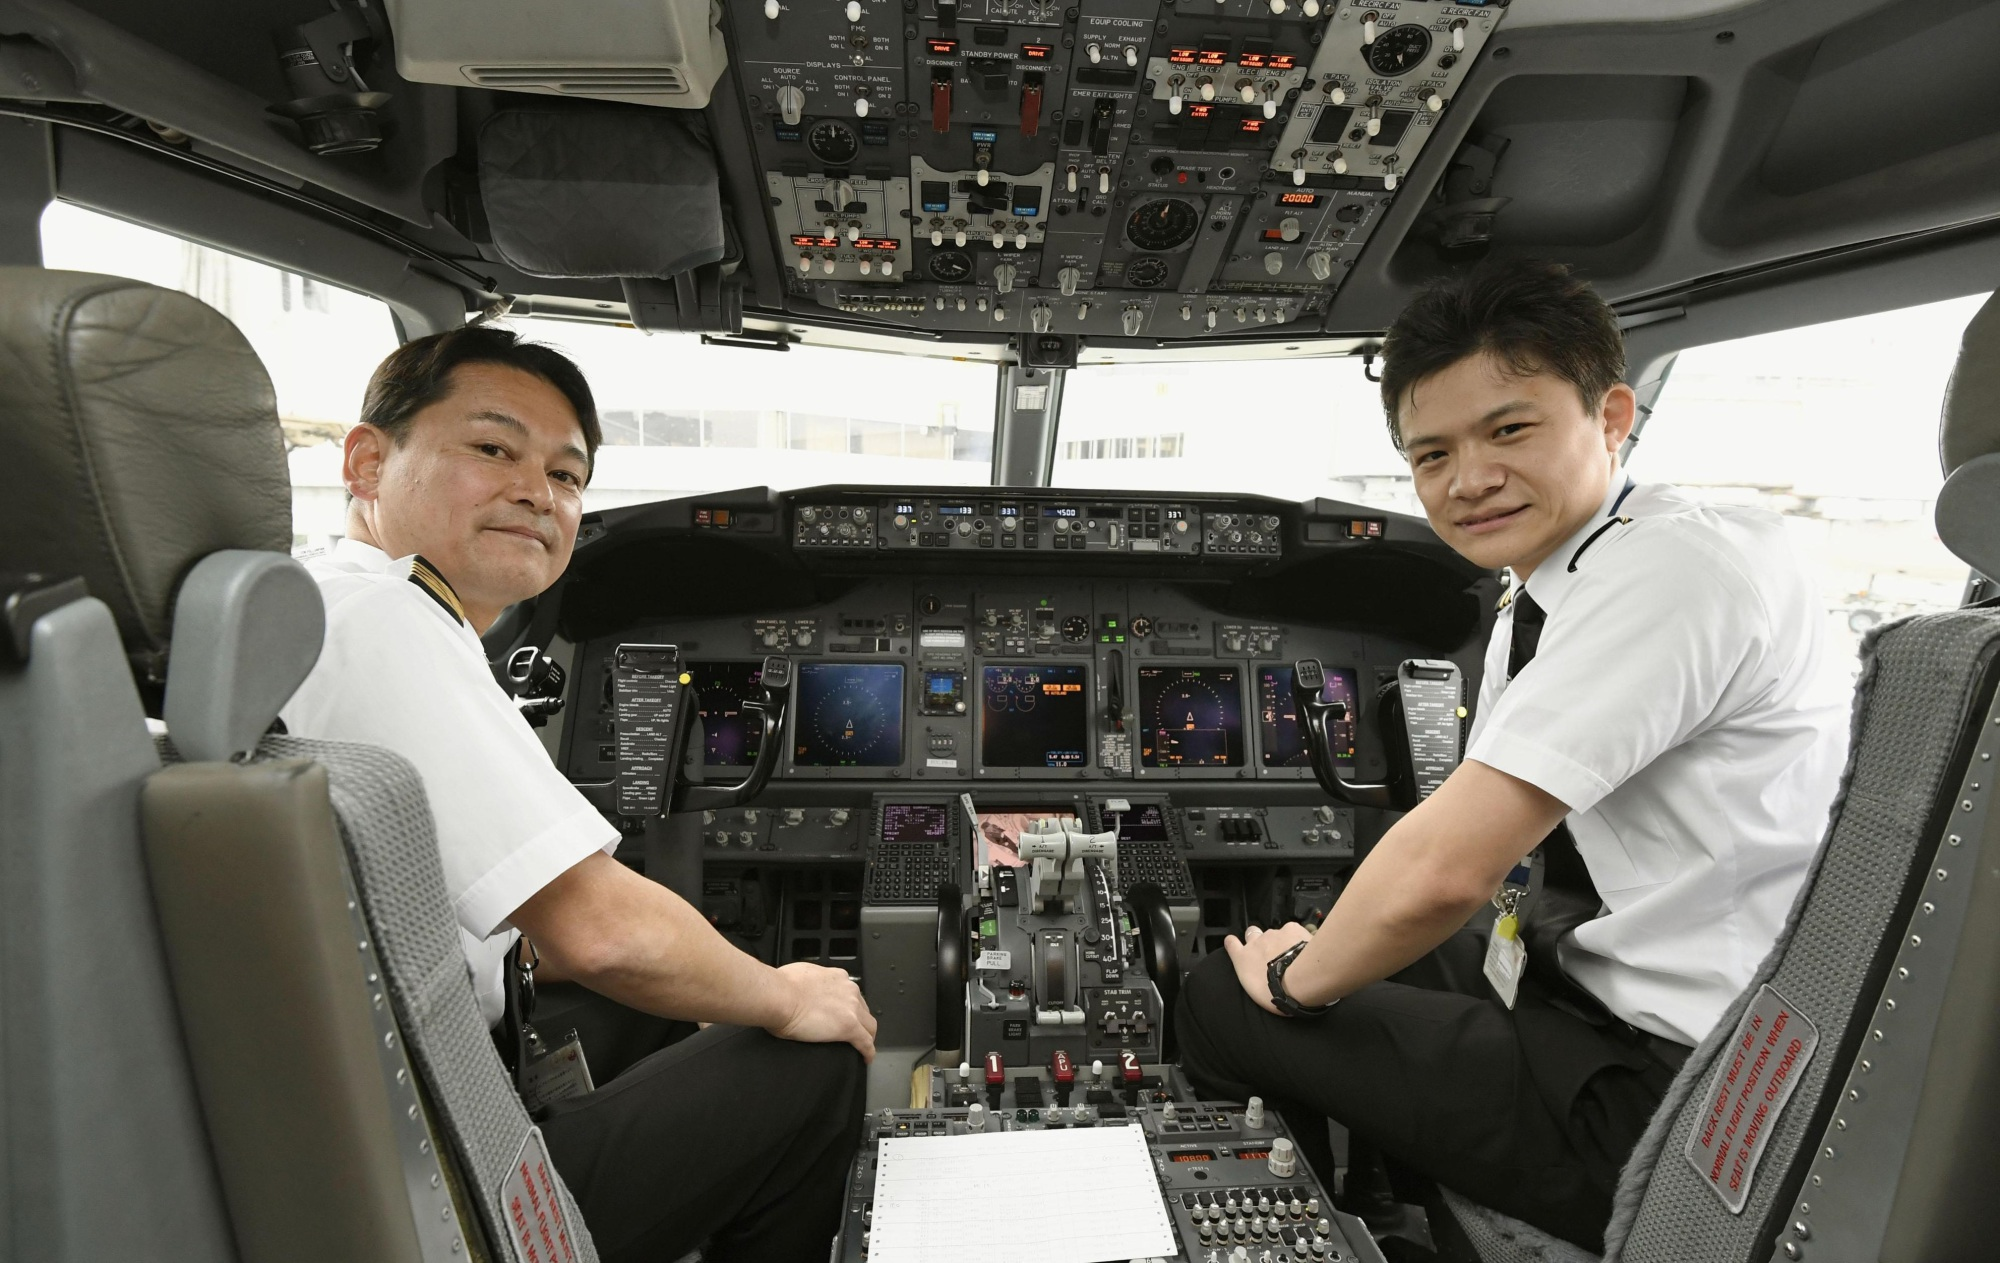 Tatsuhiko Senzaki (right) gets ready for his first JAL flight as a copilot at Tokyo's Haneda airport on Monday. | KYODO